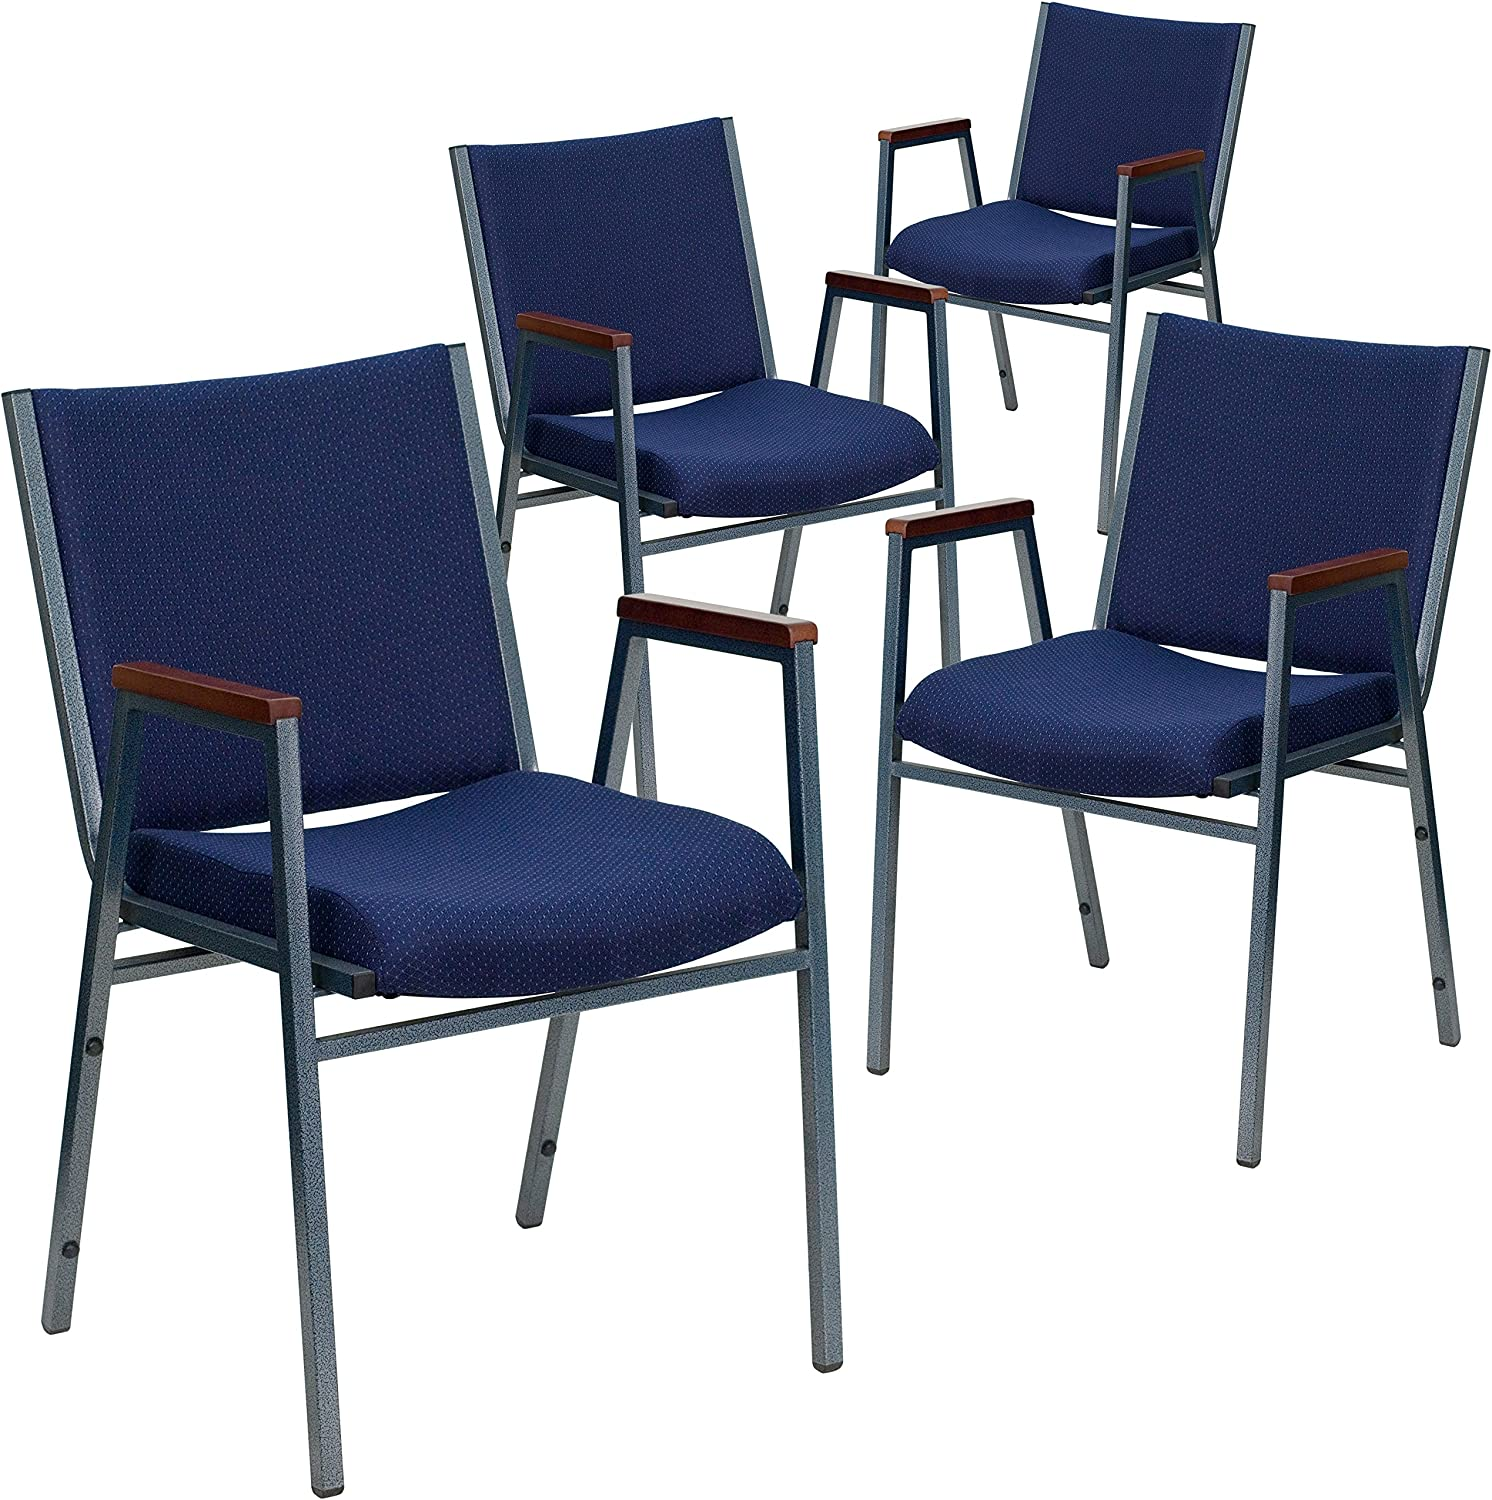 Flash Furniture 4 Pk. HERCULES Series Heavy Duty Navy Blue Dot Fabric Stack Chair with Arms